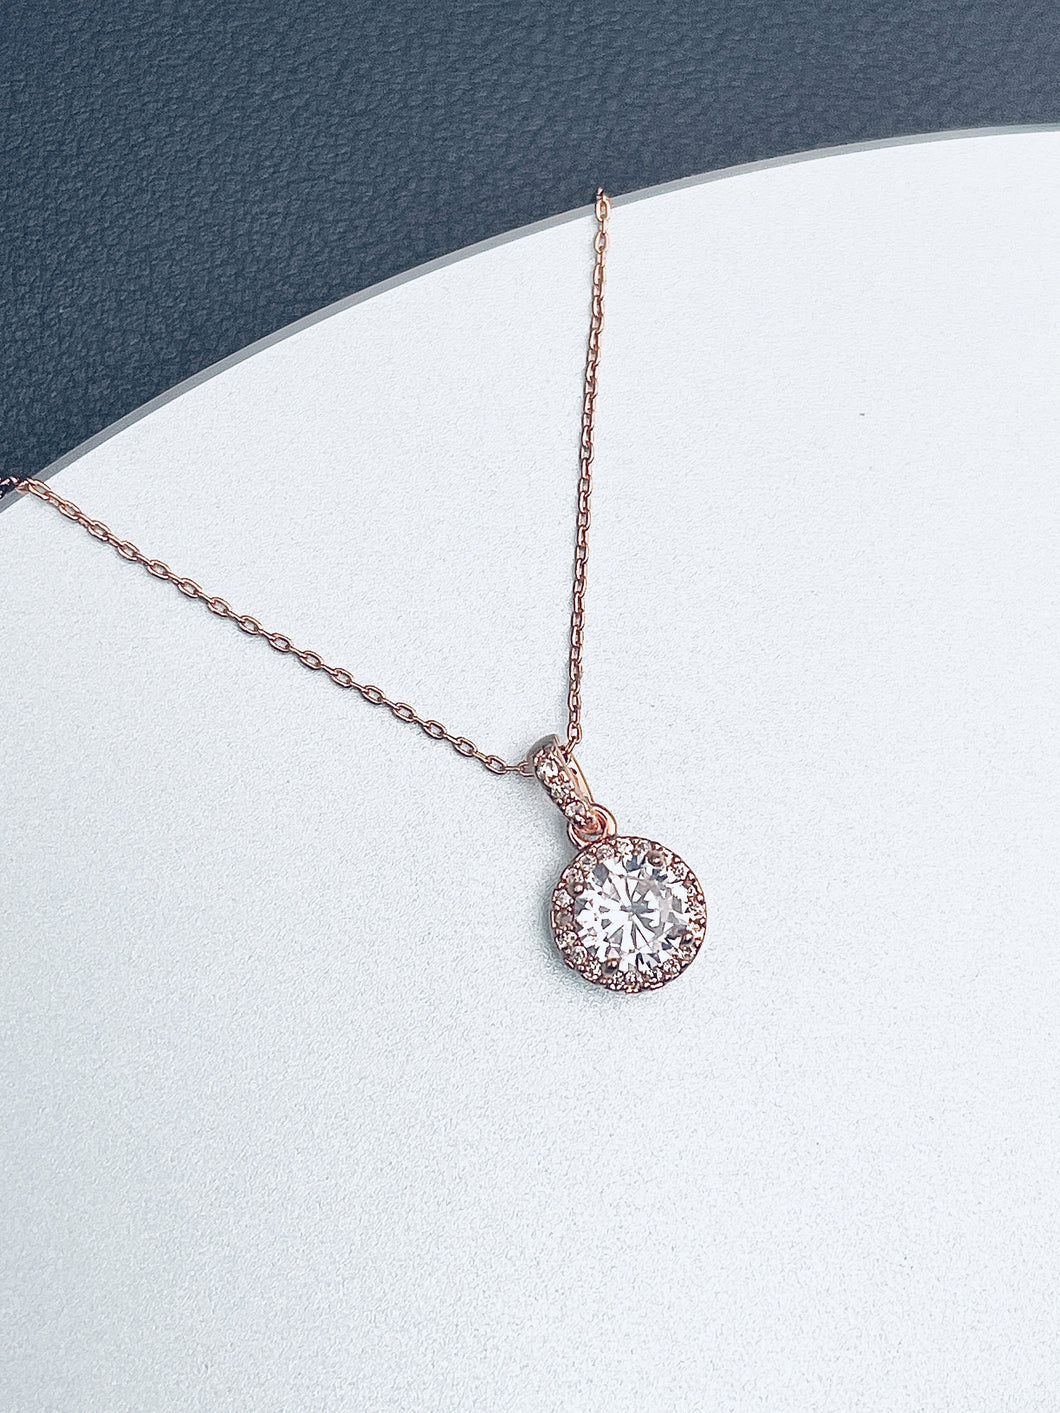 ZURI - Pendant With Round Clear CZ In A Delicate Setting In Rose Gold - JohnnyB Jewelry